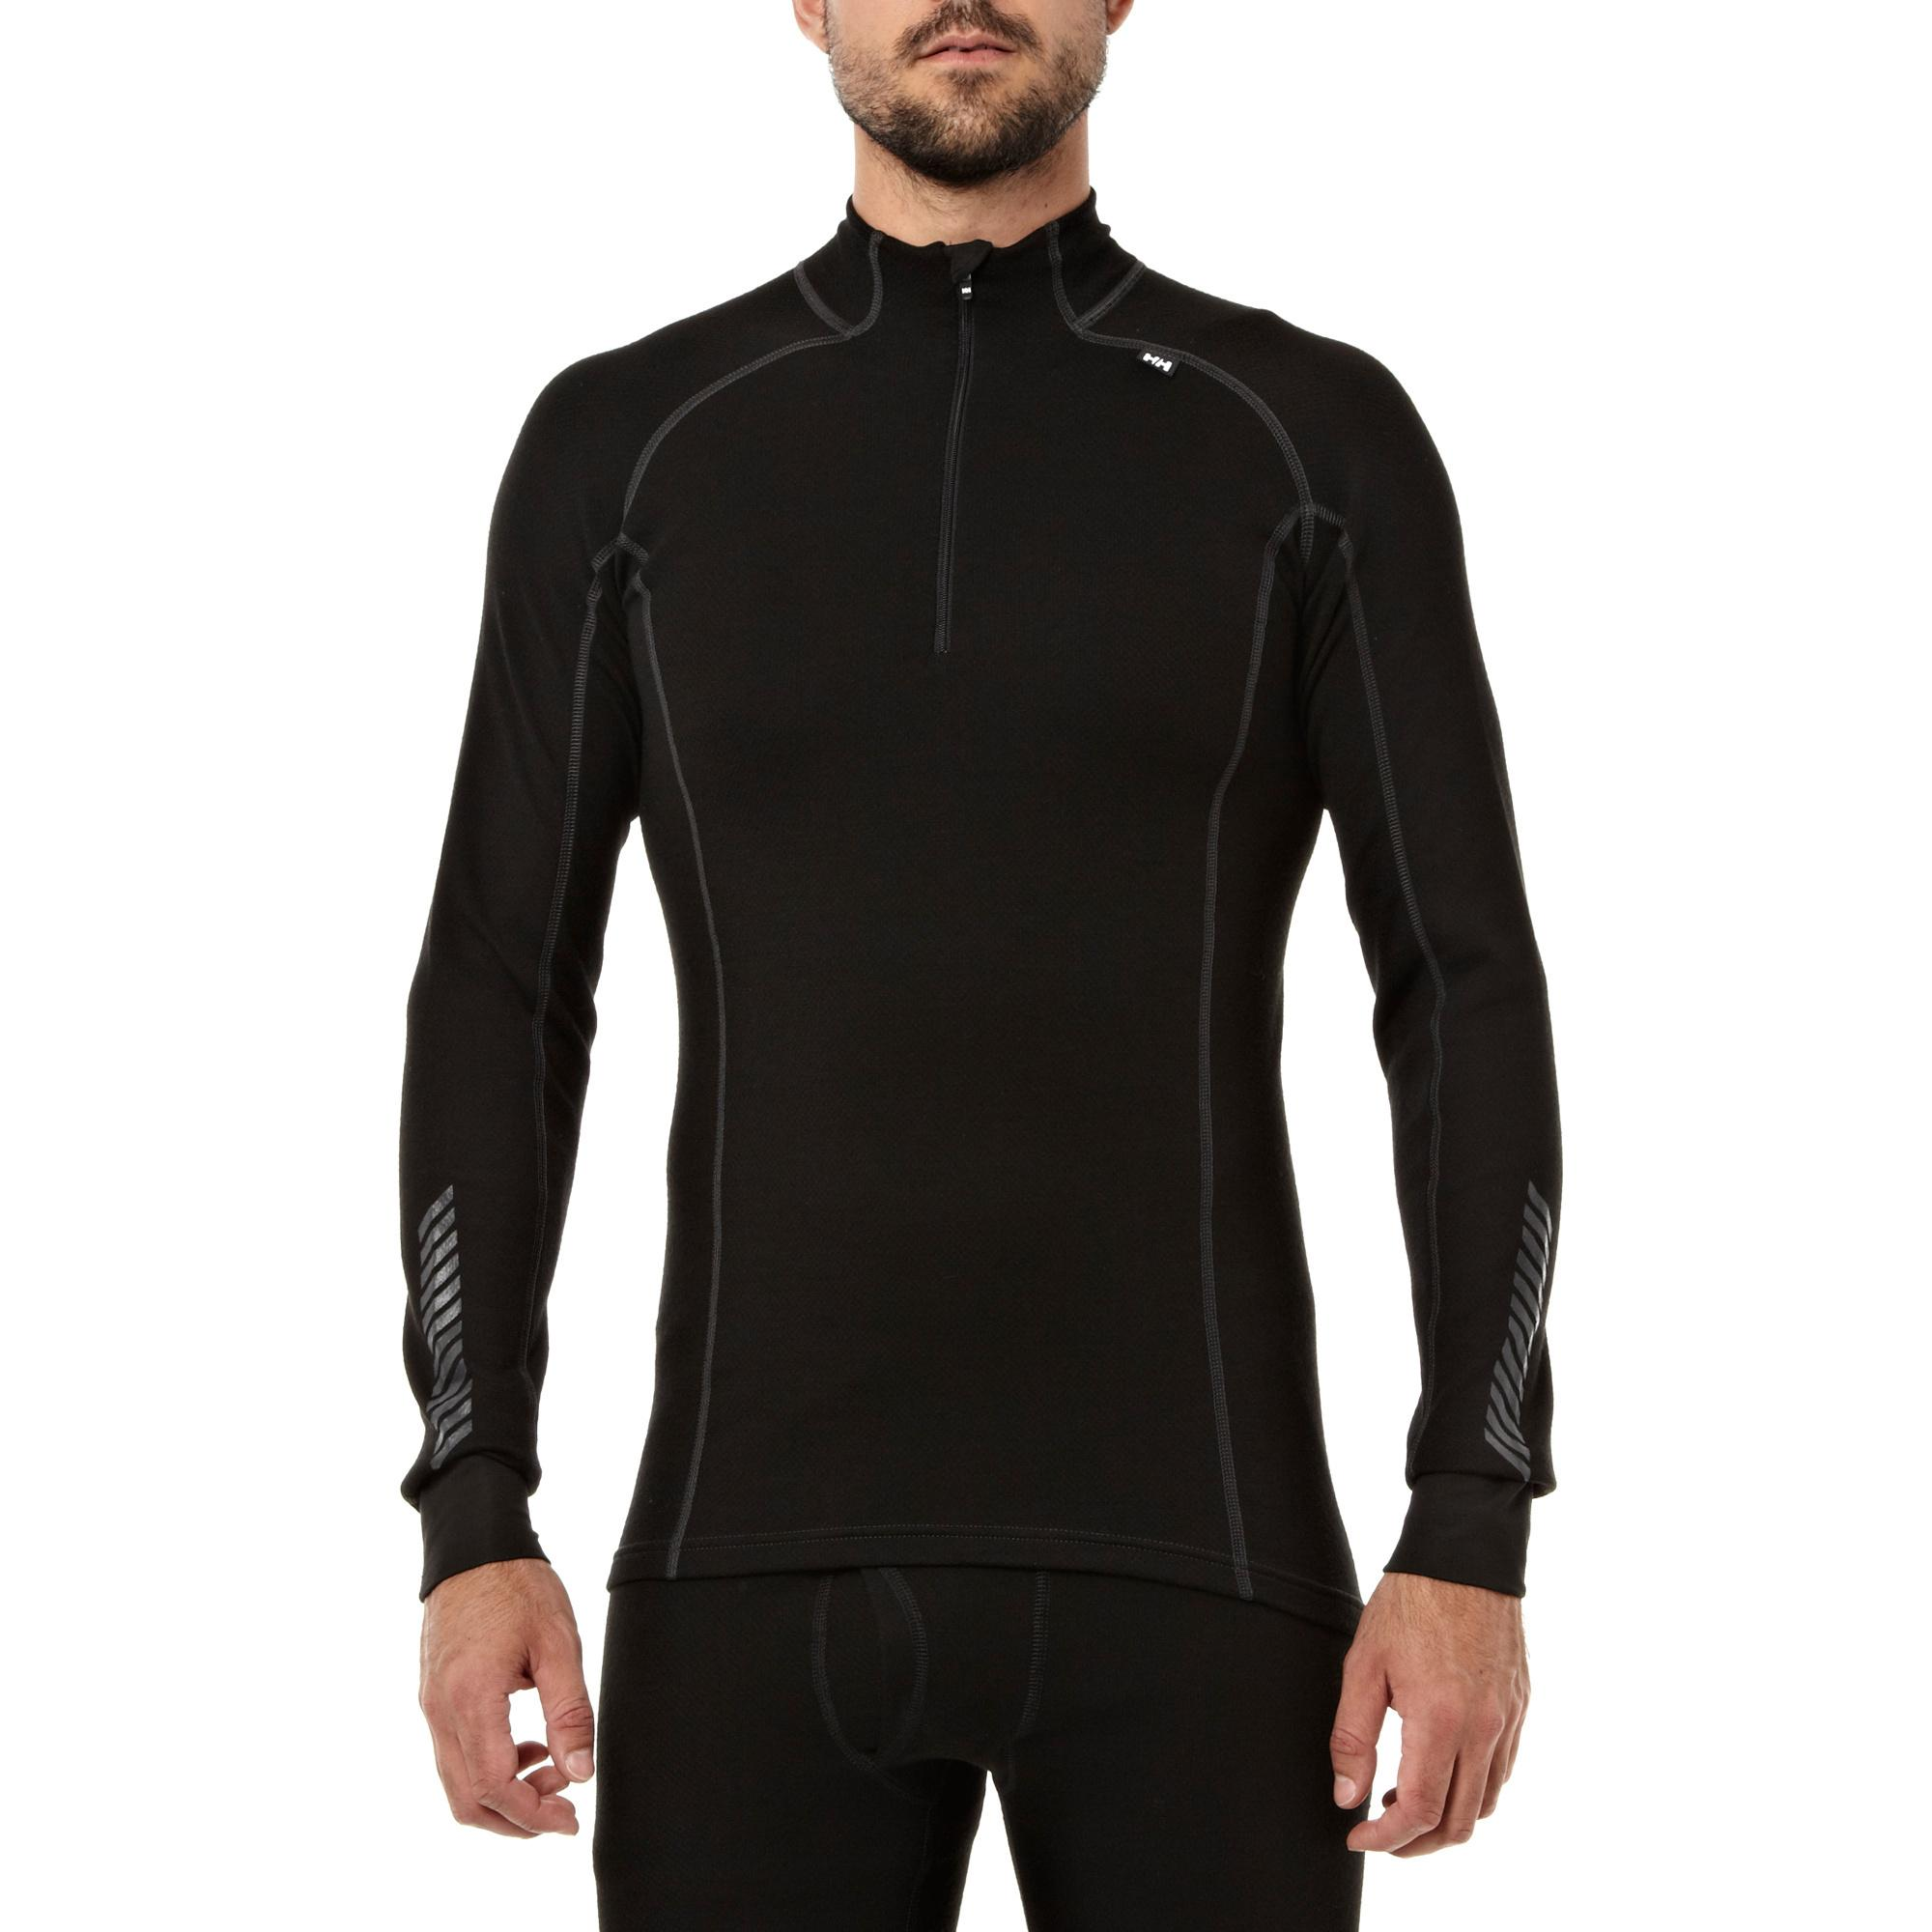 Helly Hansen Men's Warm Freeze Half Zip Base Layer, Black